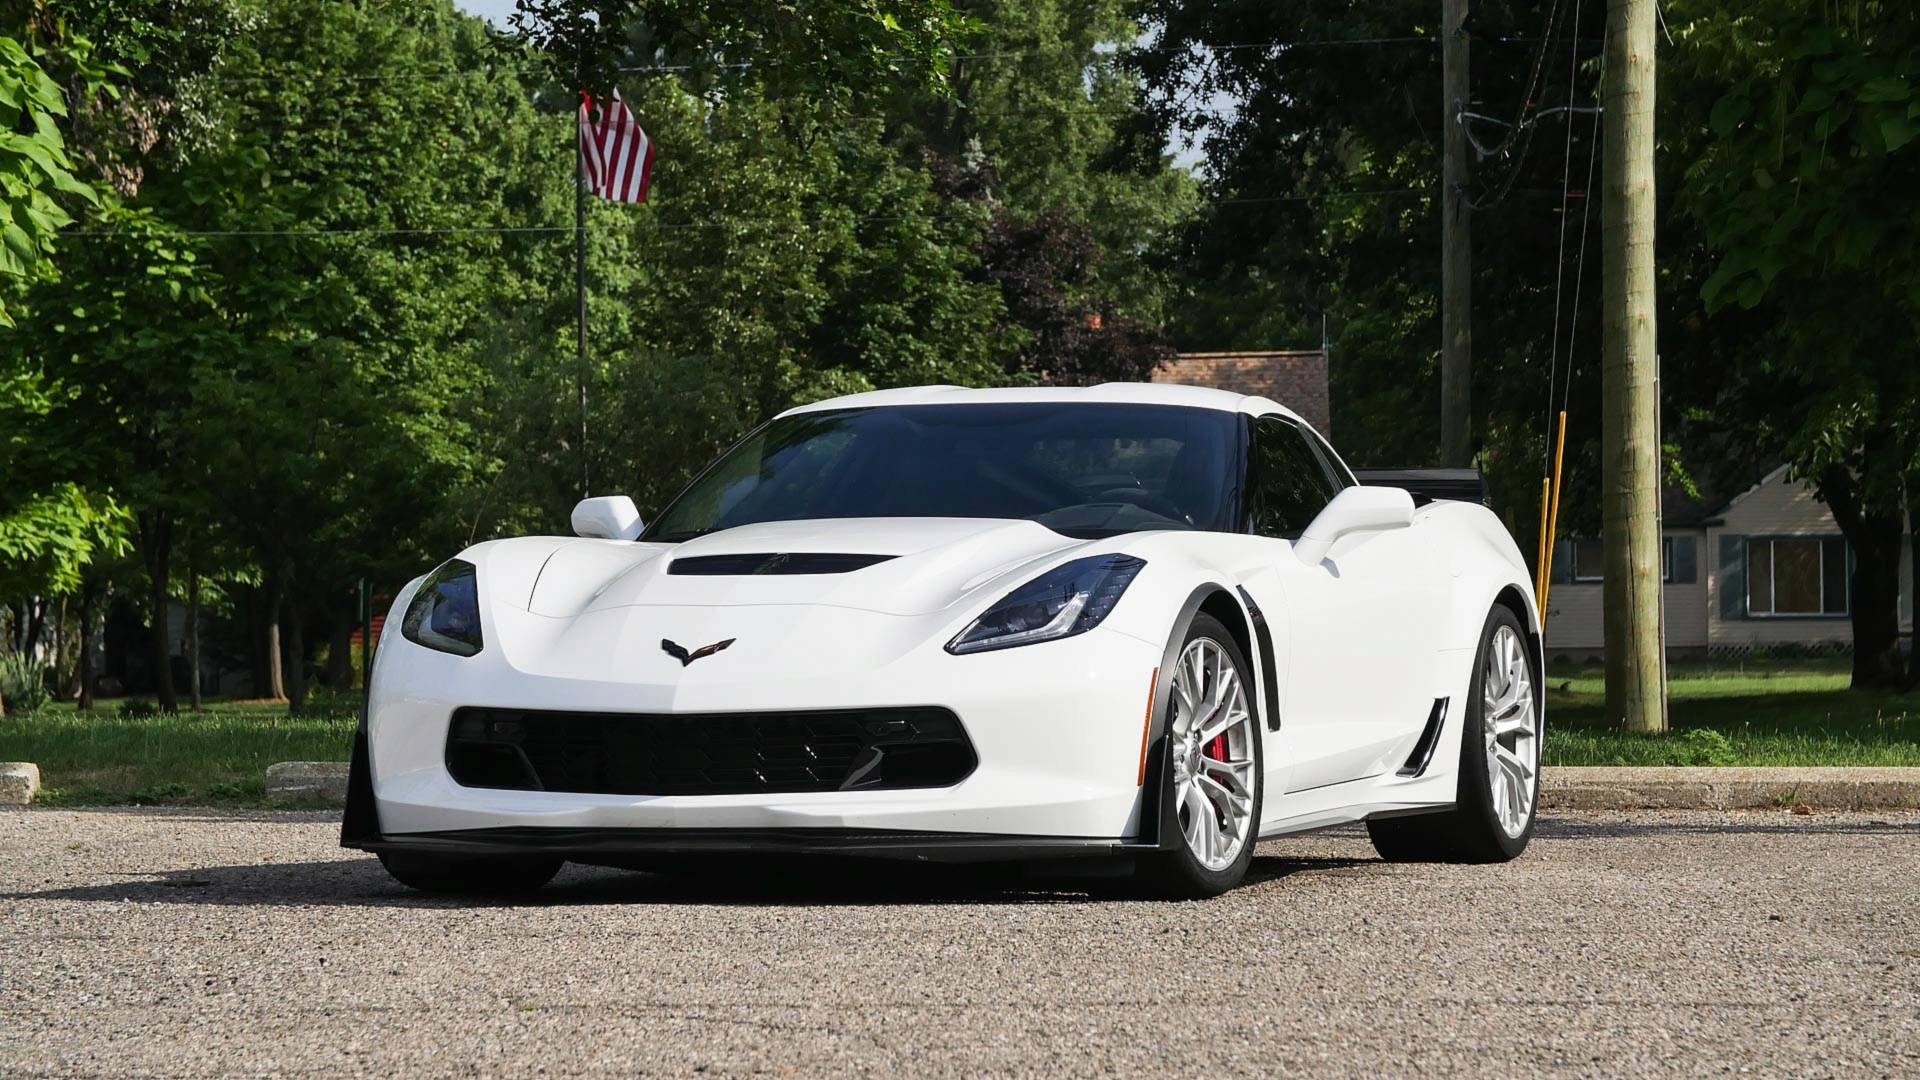 97 Best 2020 Corvette Z07 Prices